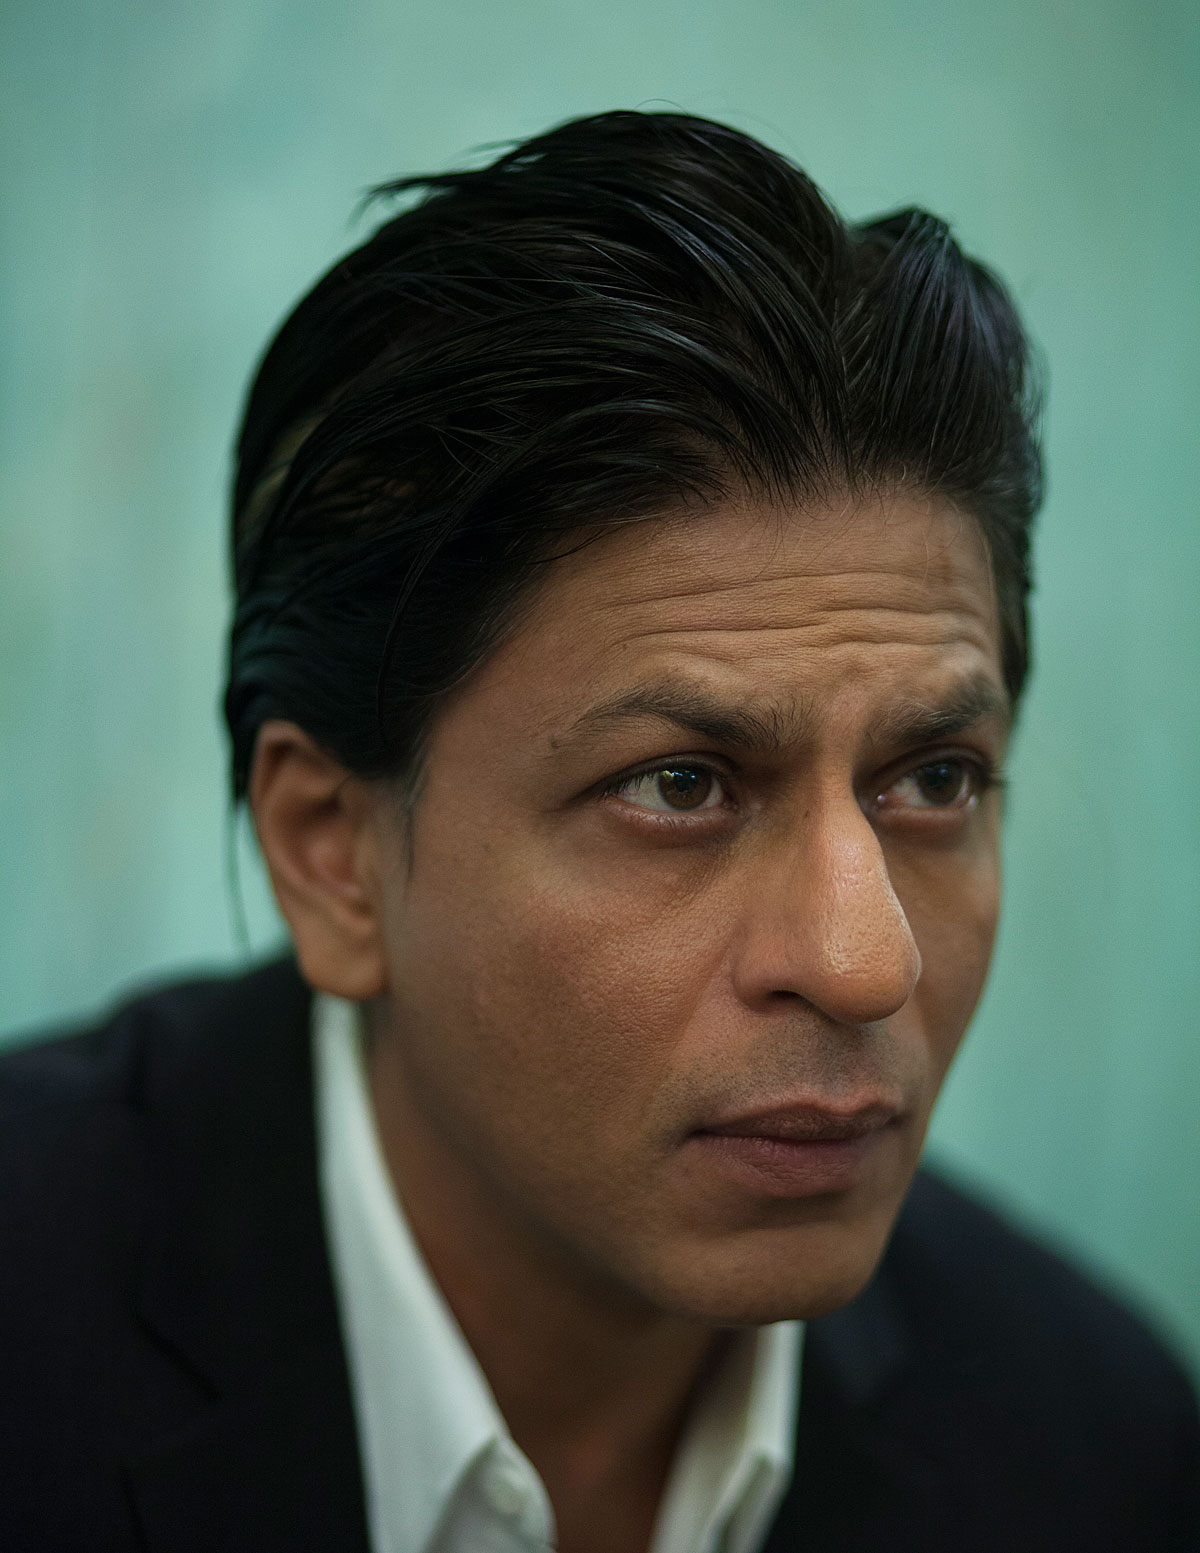 Bollywood celebrity Shah Rukh Khan